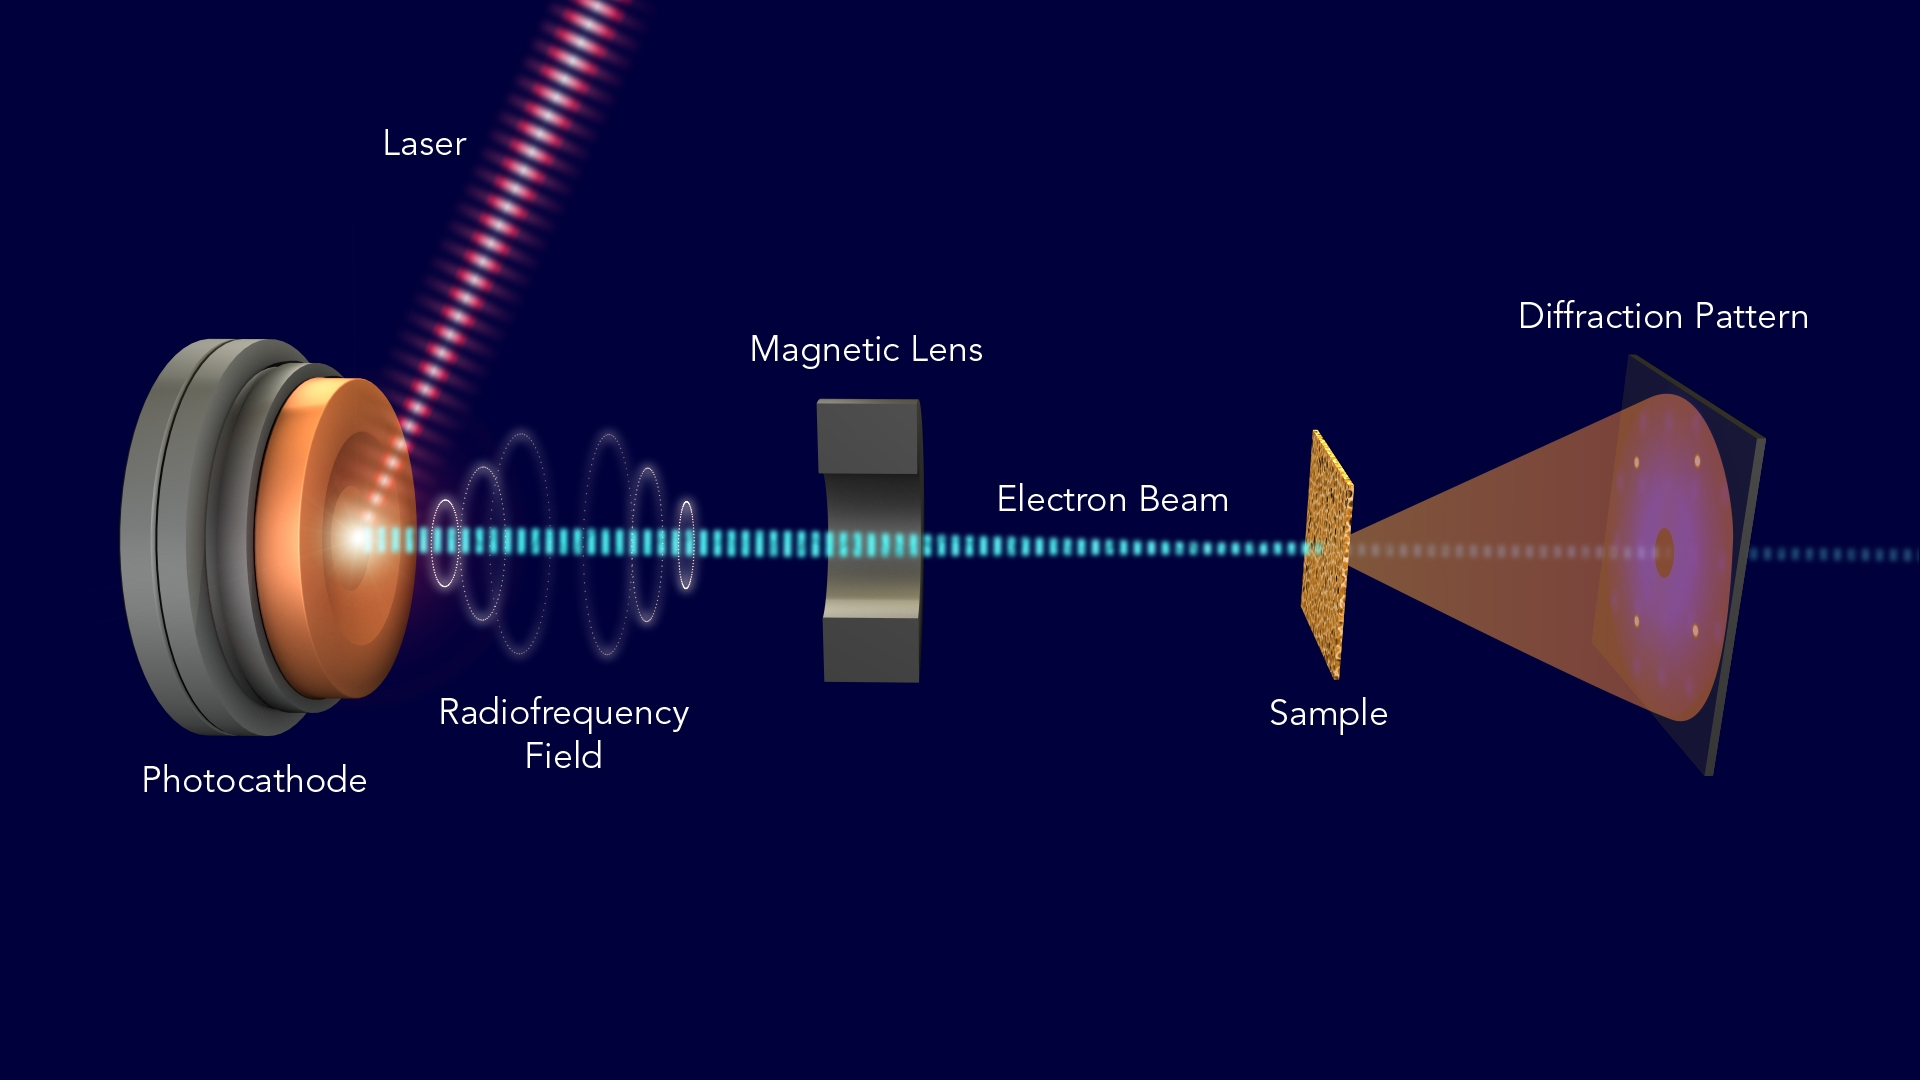 electron diffraction reveals rapid motions of atoms and molecules